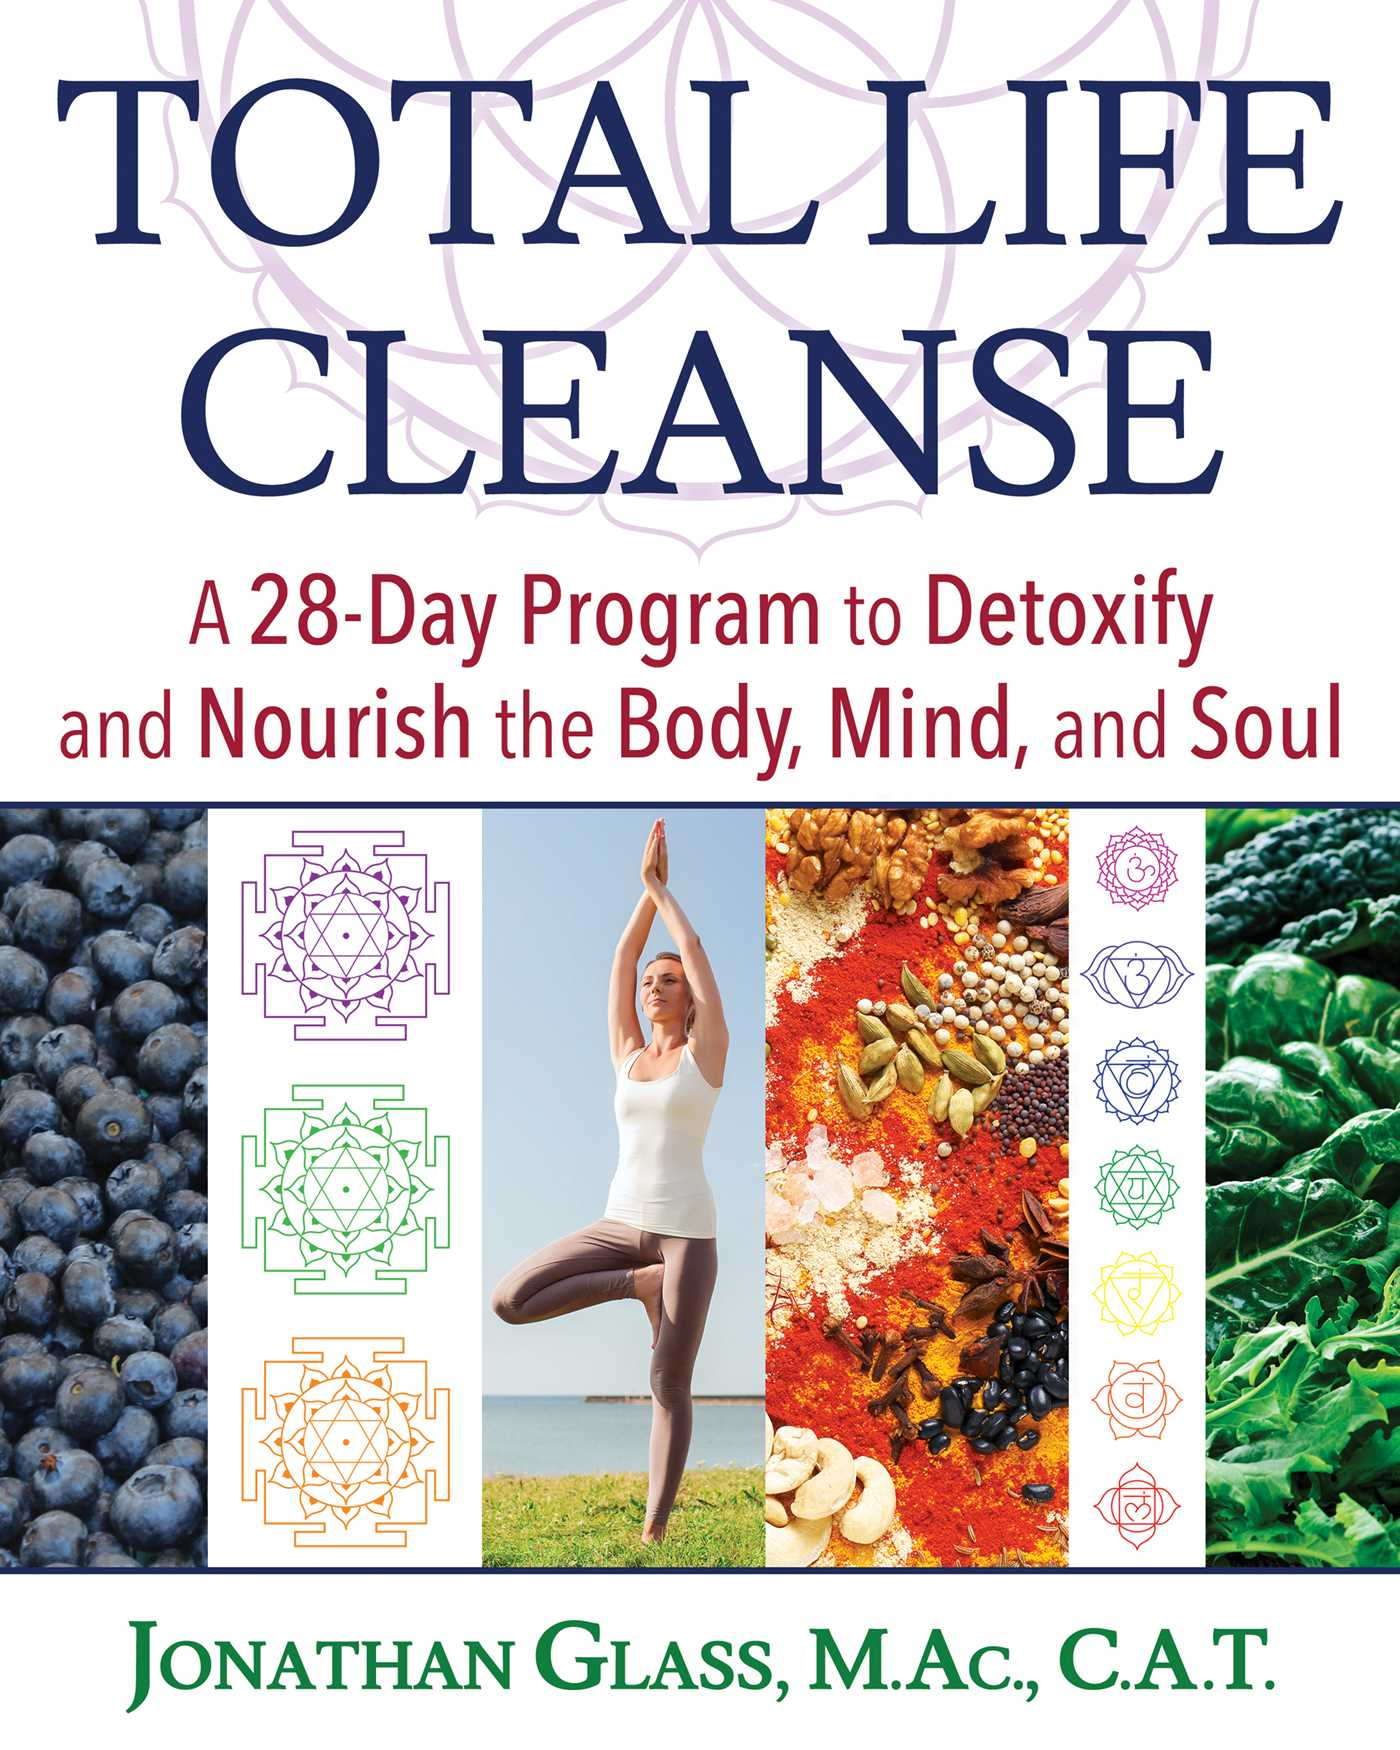 Total life cleanse 9781620556924 hr